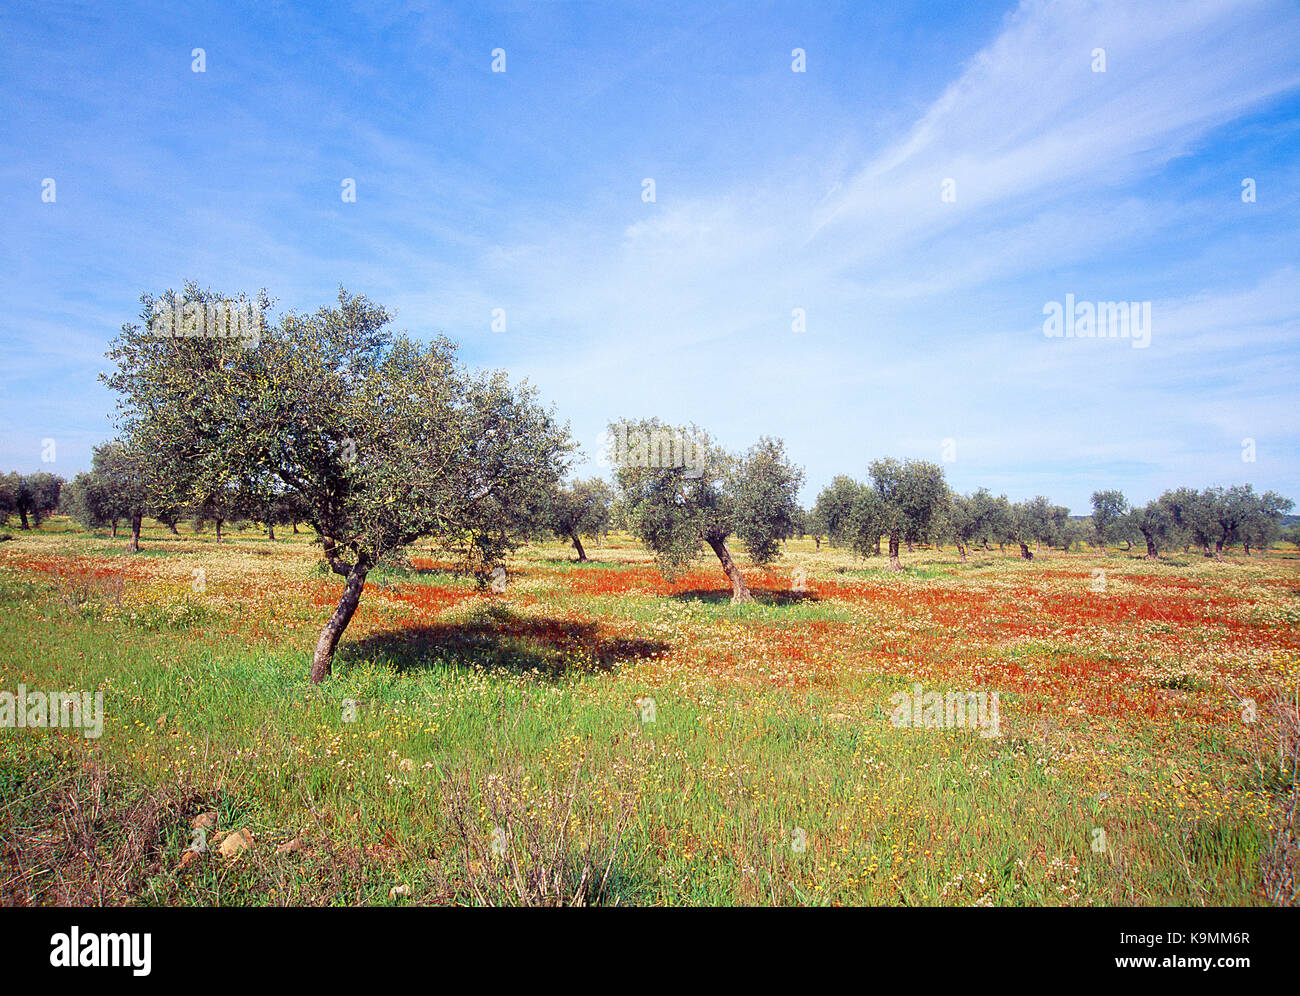 Holm oaks and meadow. Cornalvo Nature Reserve, Badajoz province, Extremadura, Spain. - Stock Image